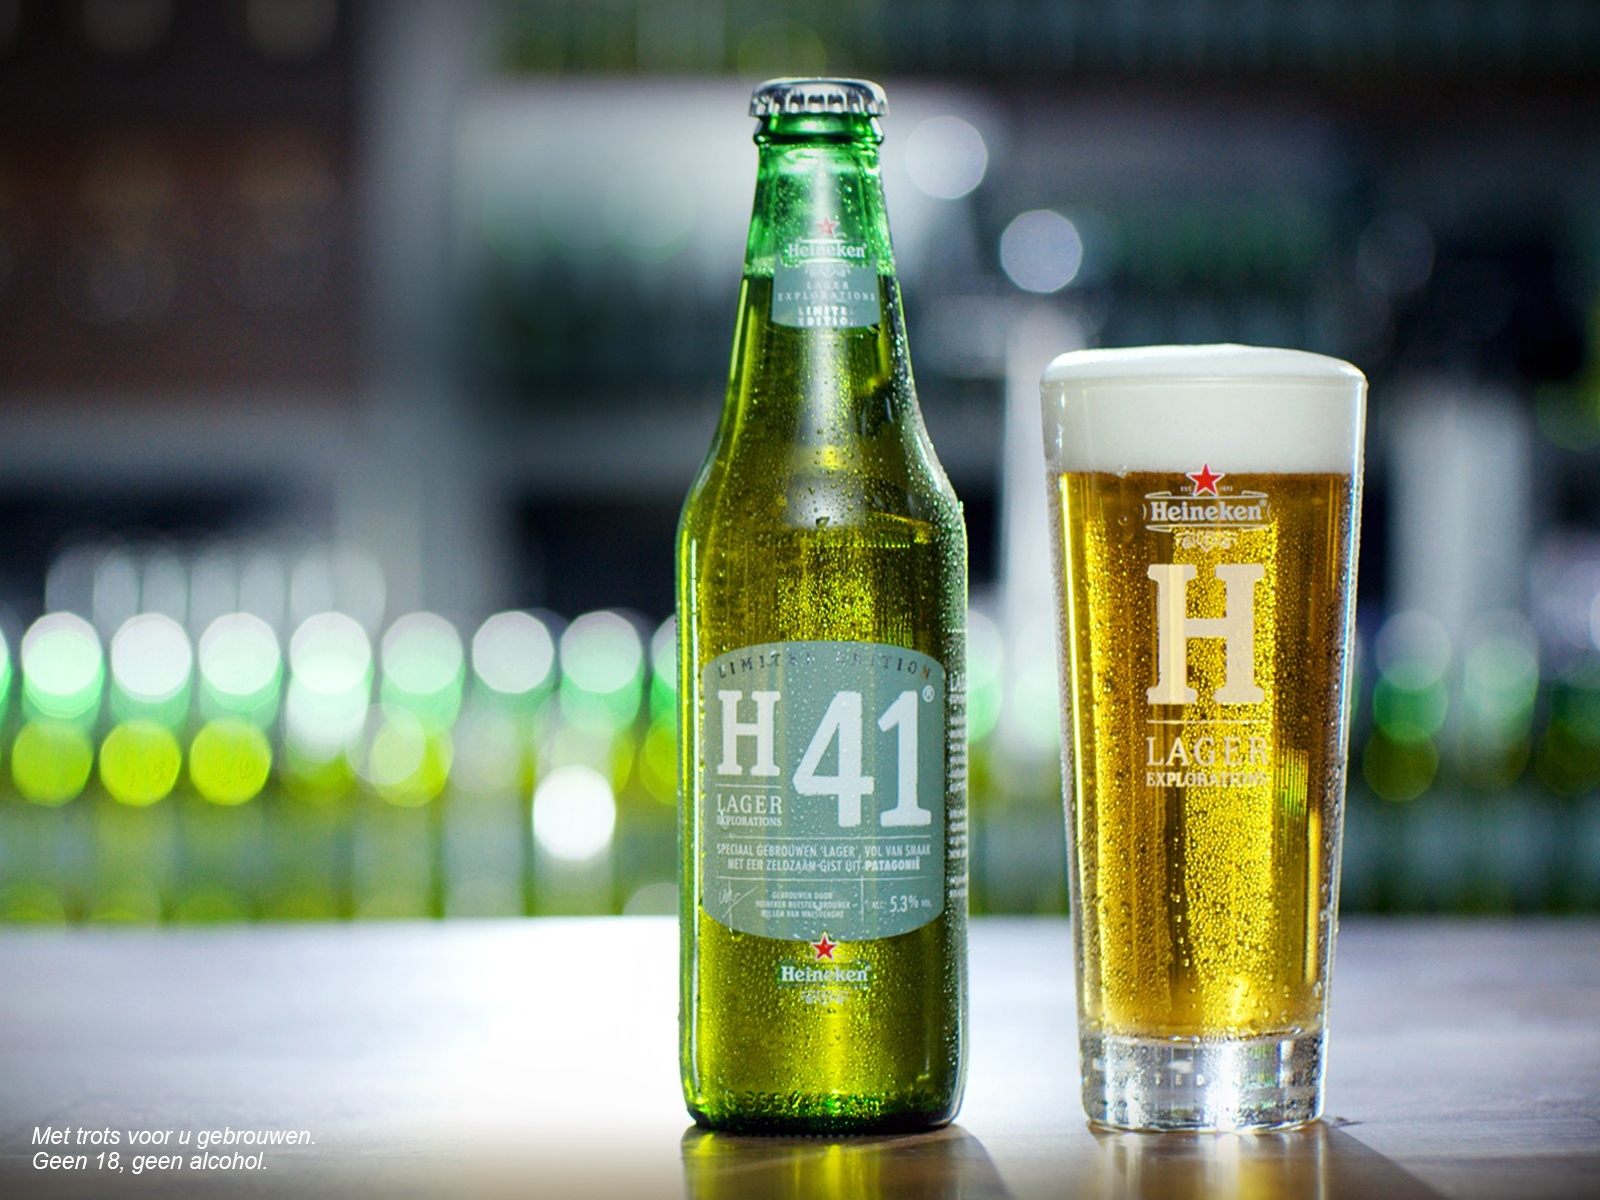 heineken company essay Heineken company a introduction ethics is one of the most important factors to build reputation and trust of a business among suppliers and consumers.